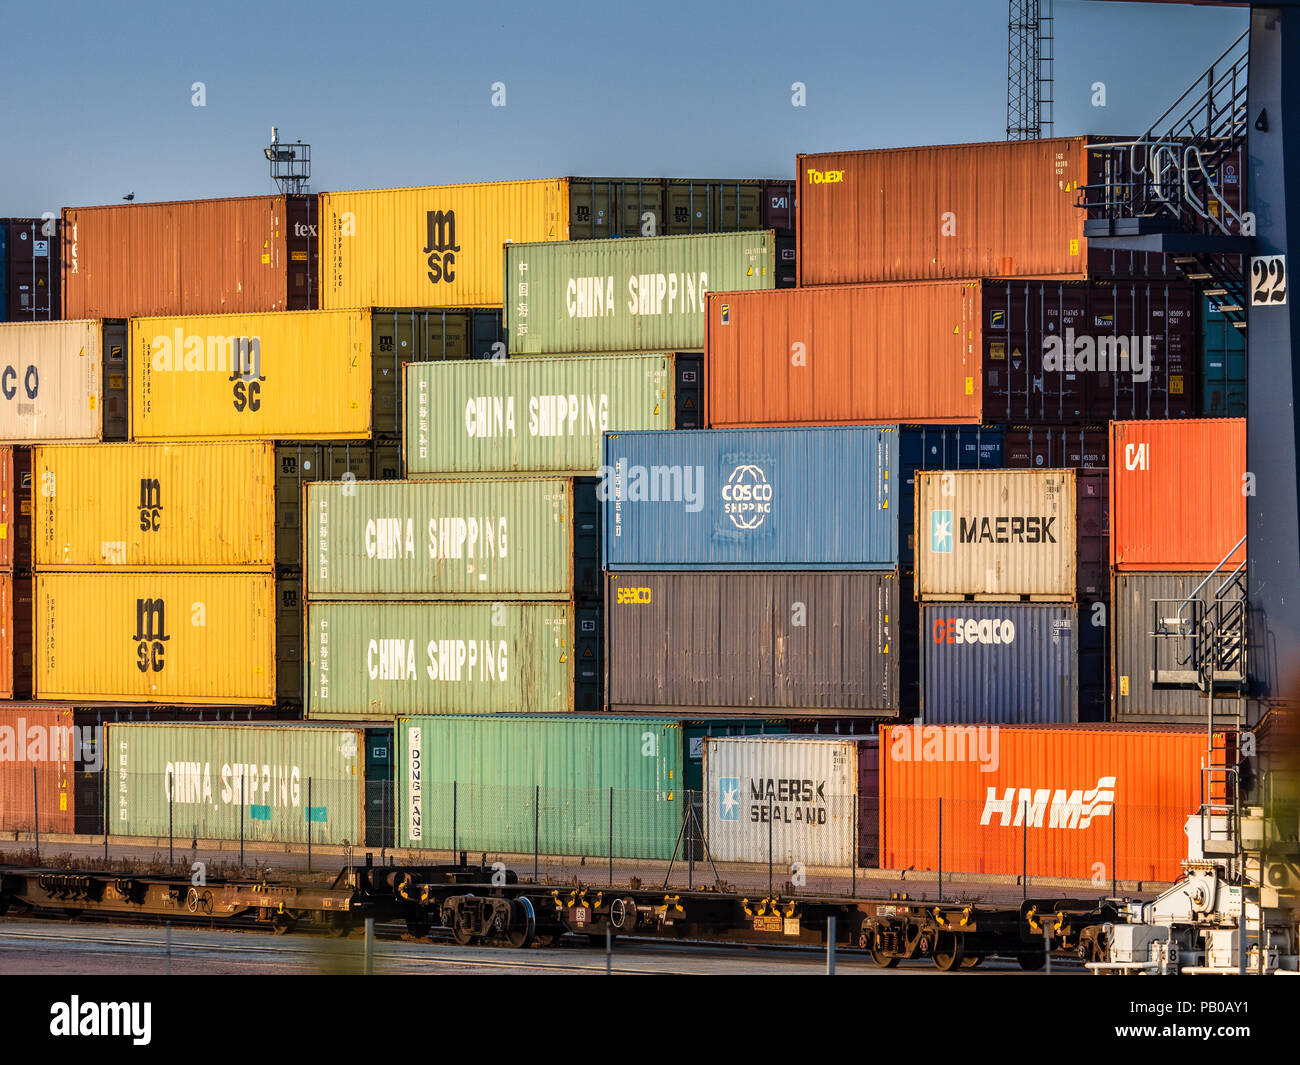 Container Trade - Shipping Containers await loading onto trains at the Felixstowe Port, the UK's largest container port - Stock Image